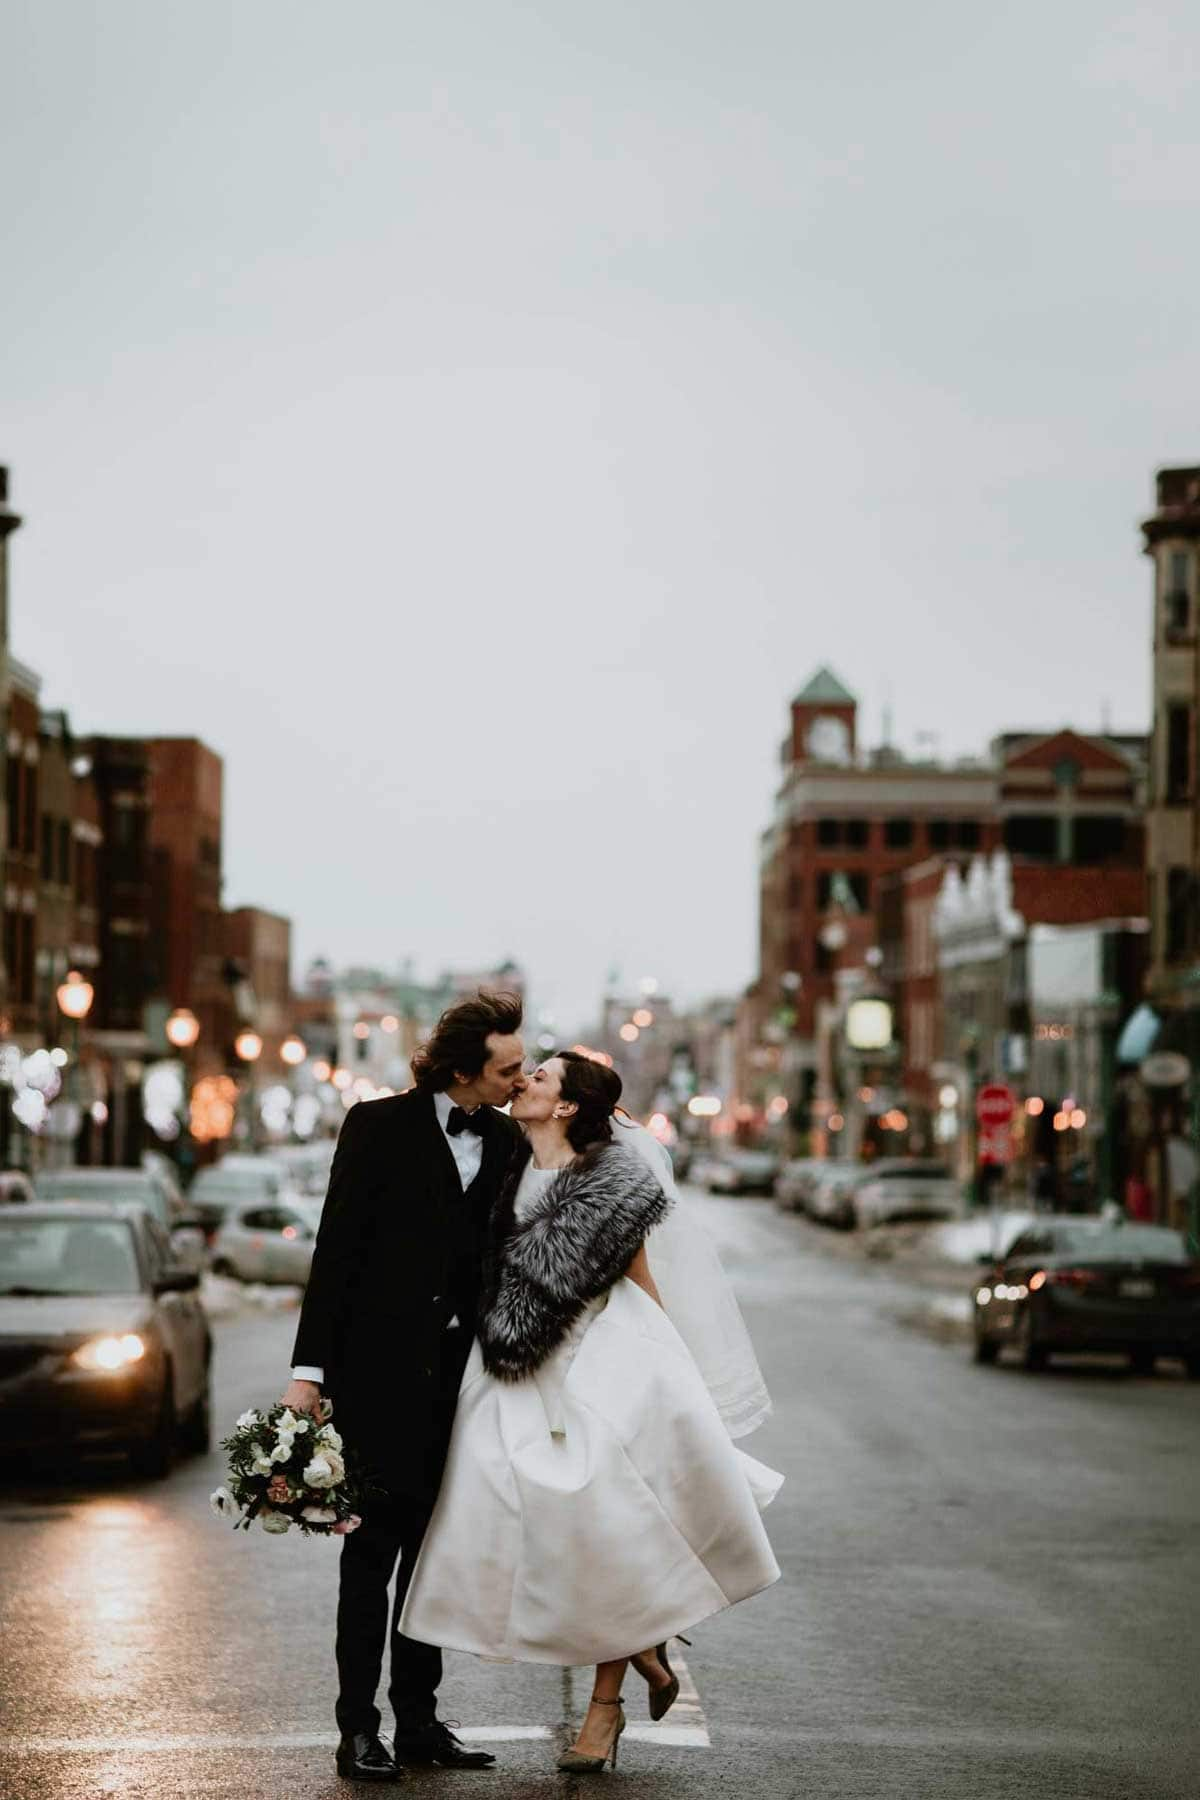 Couple kissing in the middle of a street in Montreal at dusk